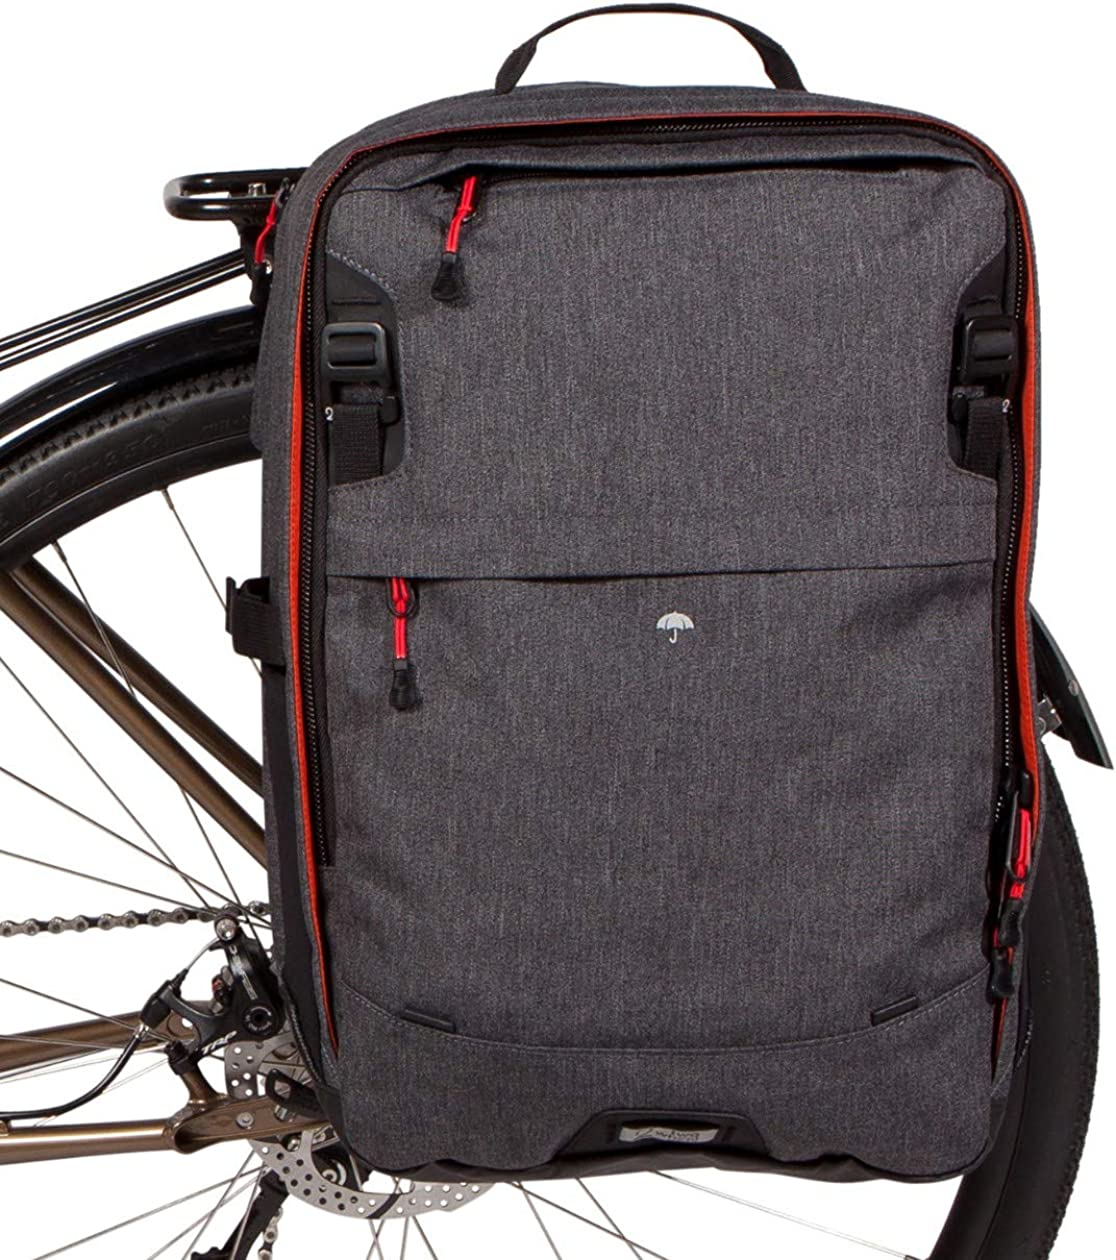 Two Wheel Gear - Pannier Backpack Convertible - 2 in 1 Bike Commuting and Travel Bag